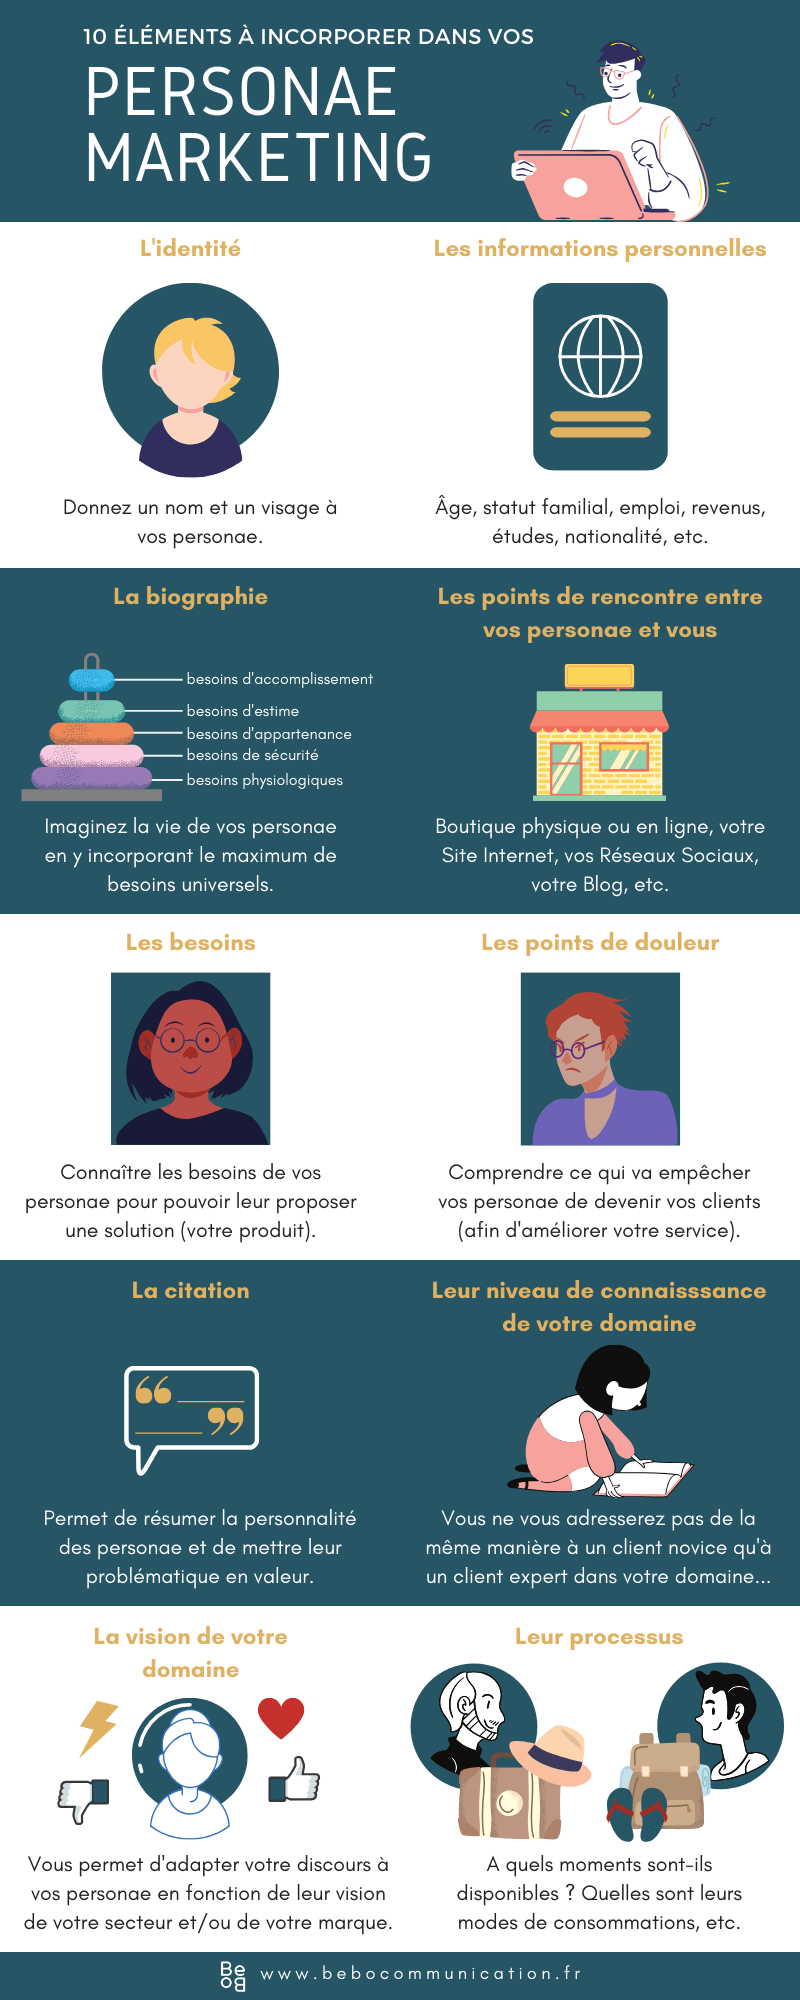 Créer des personae marketing